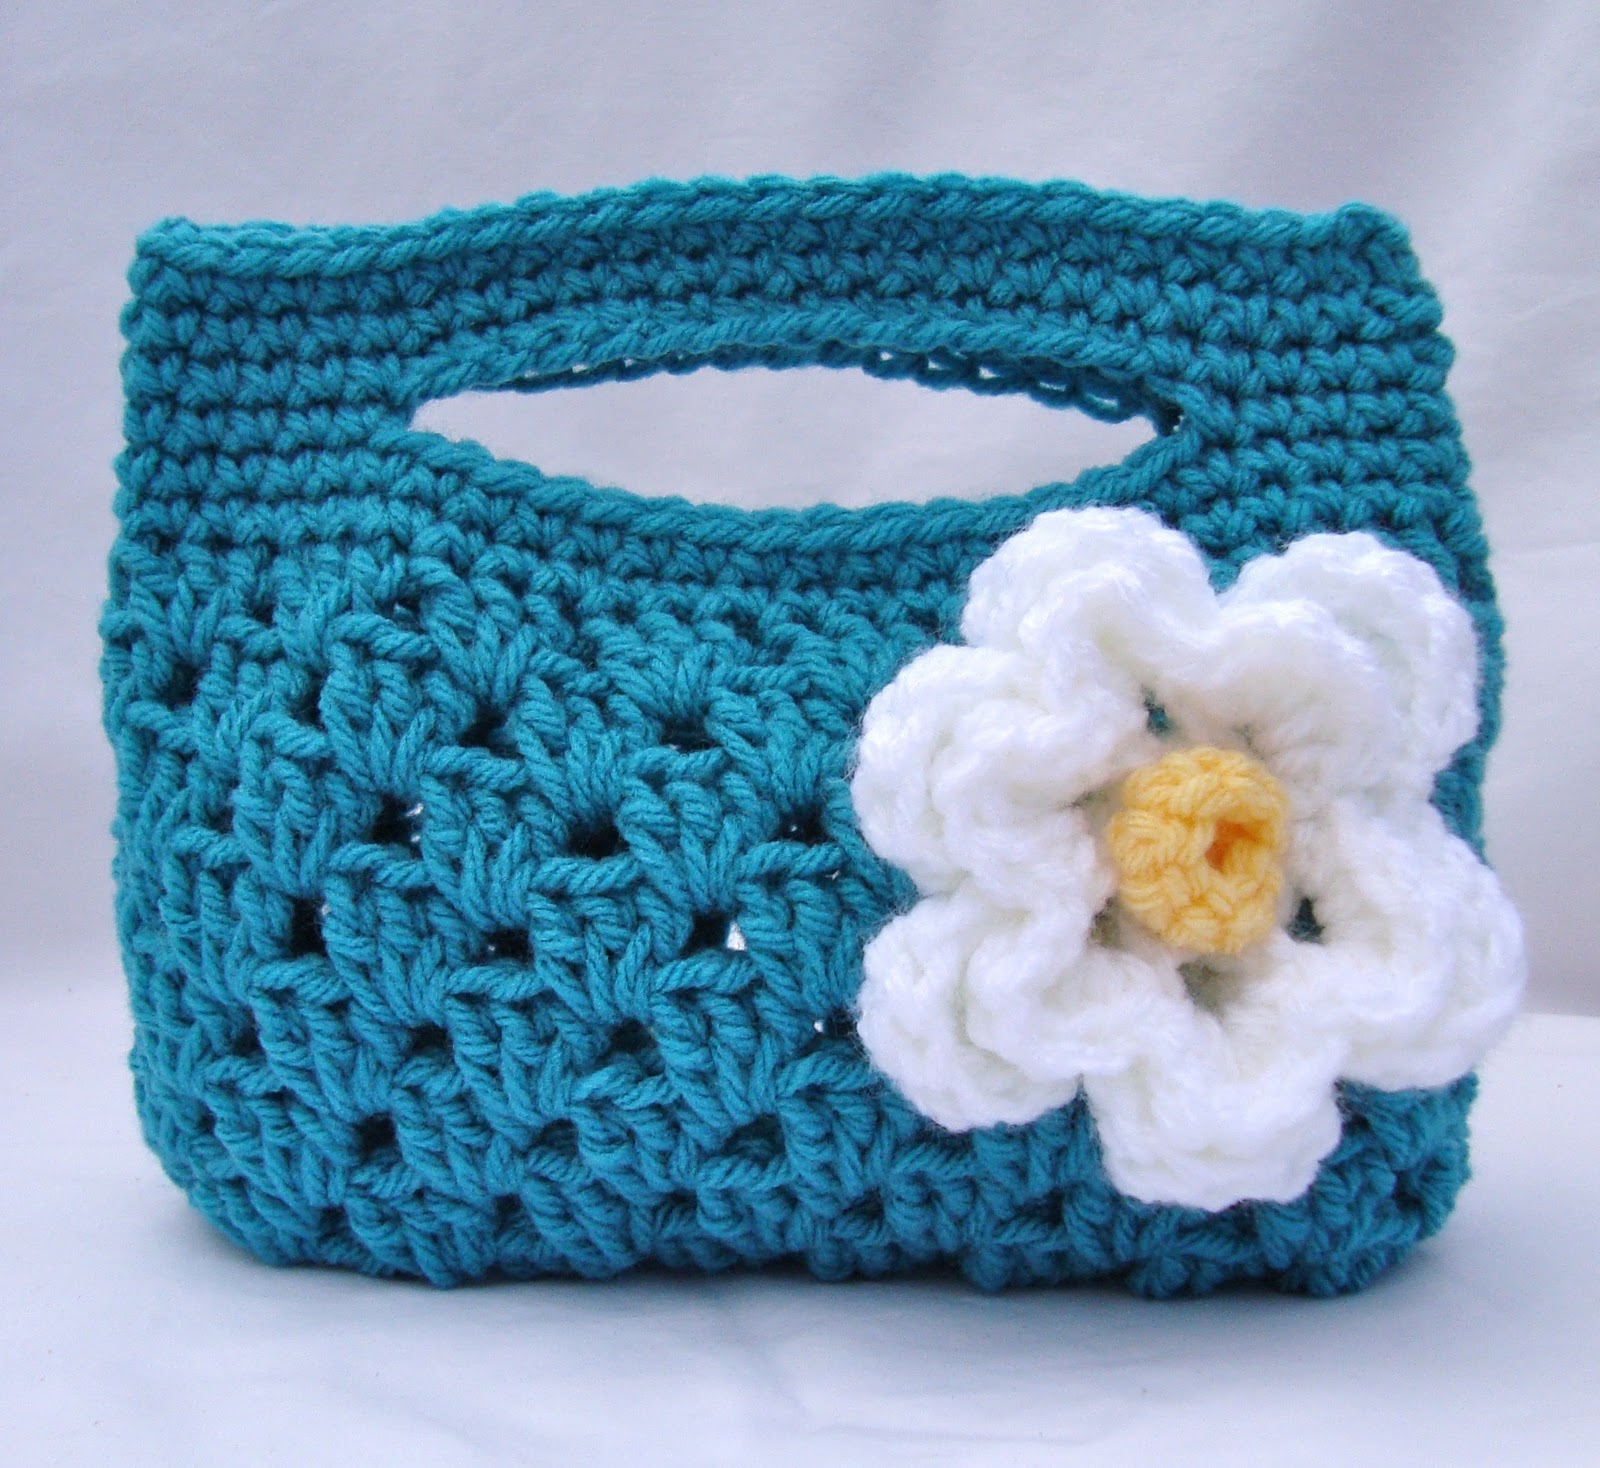 Crochet Purse : ... written crochet pattern tangled happy s granny stripe boutique bag